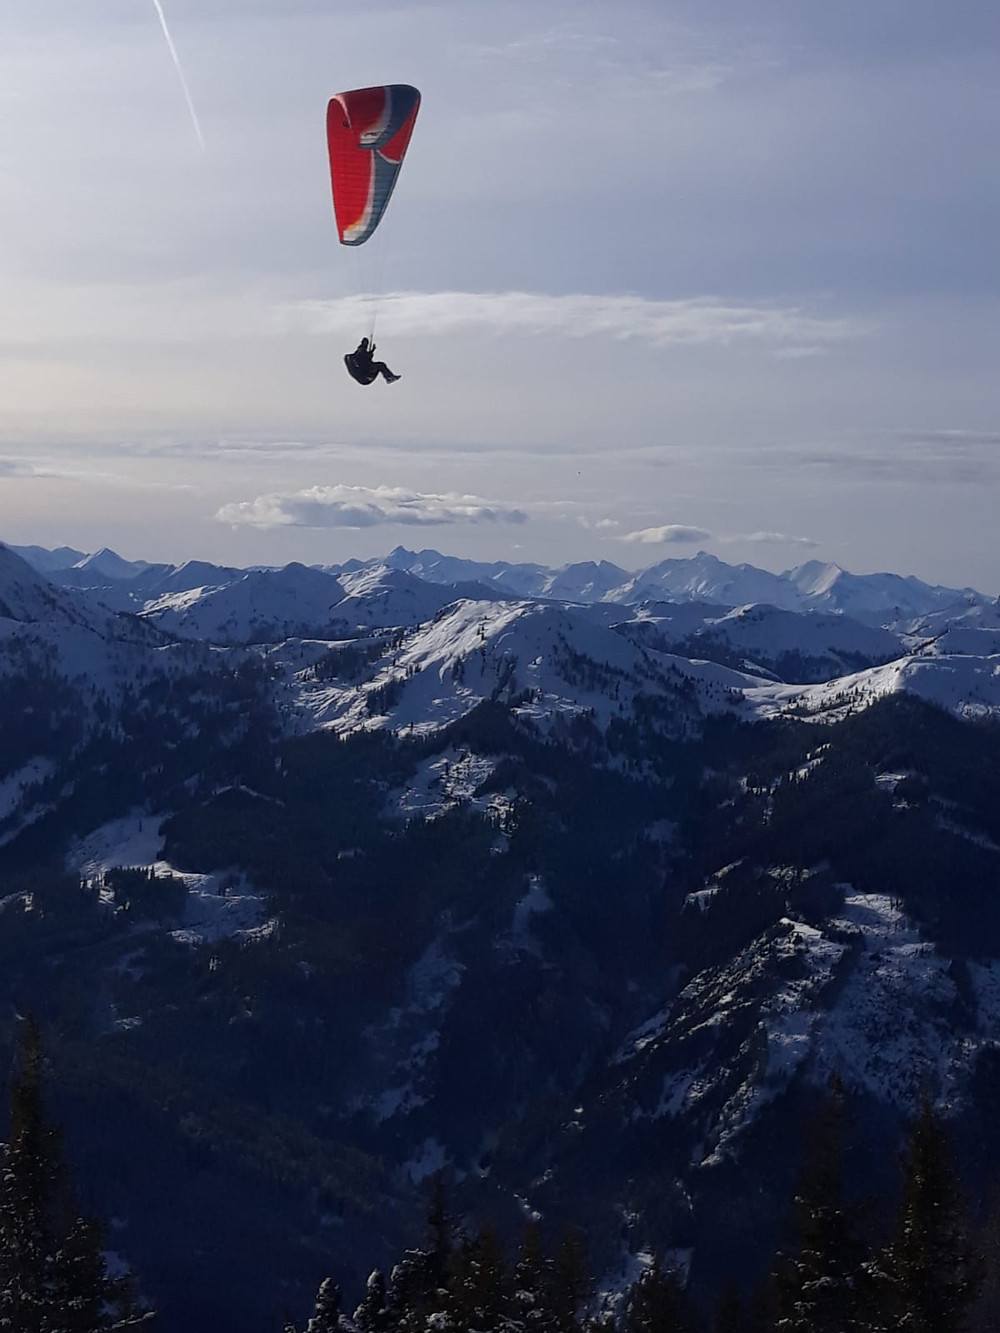 Paragliding in the Mountains - what a view!